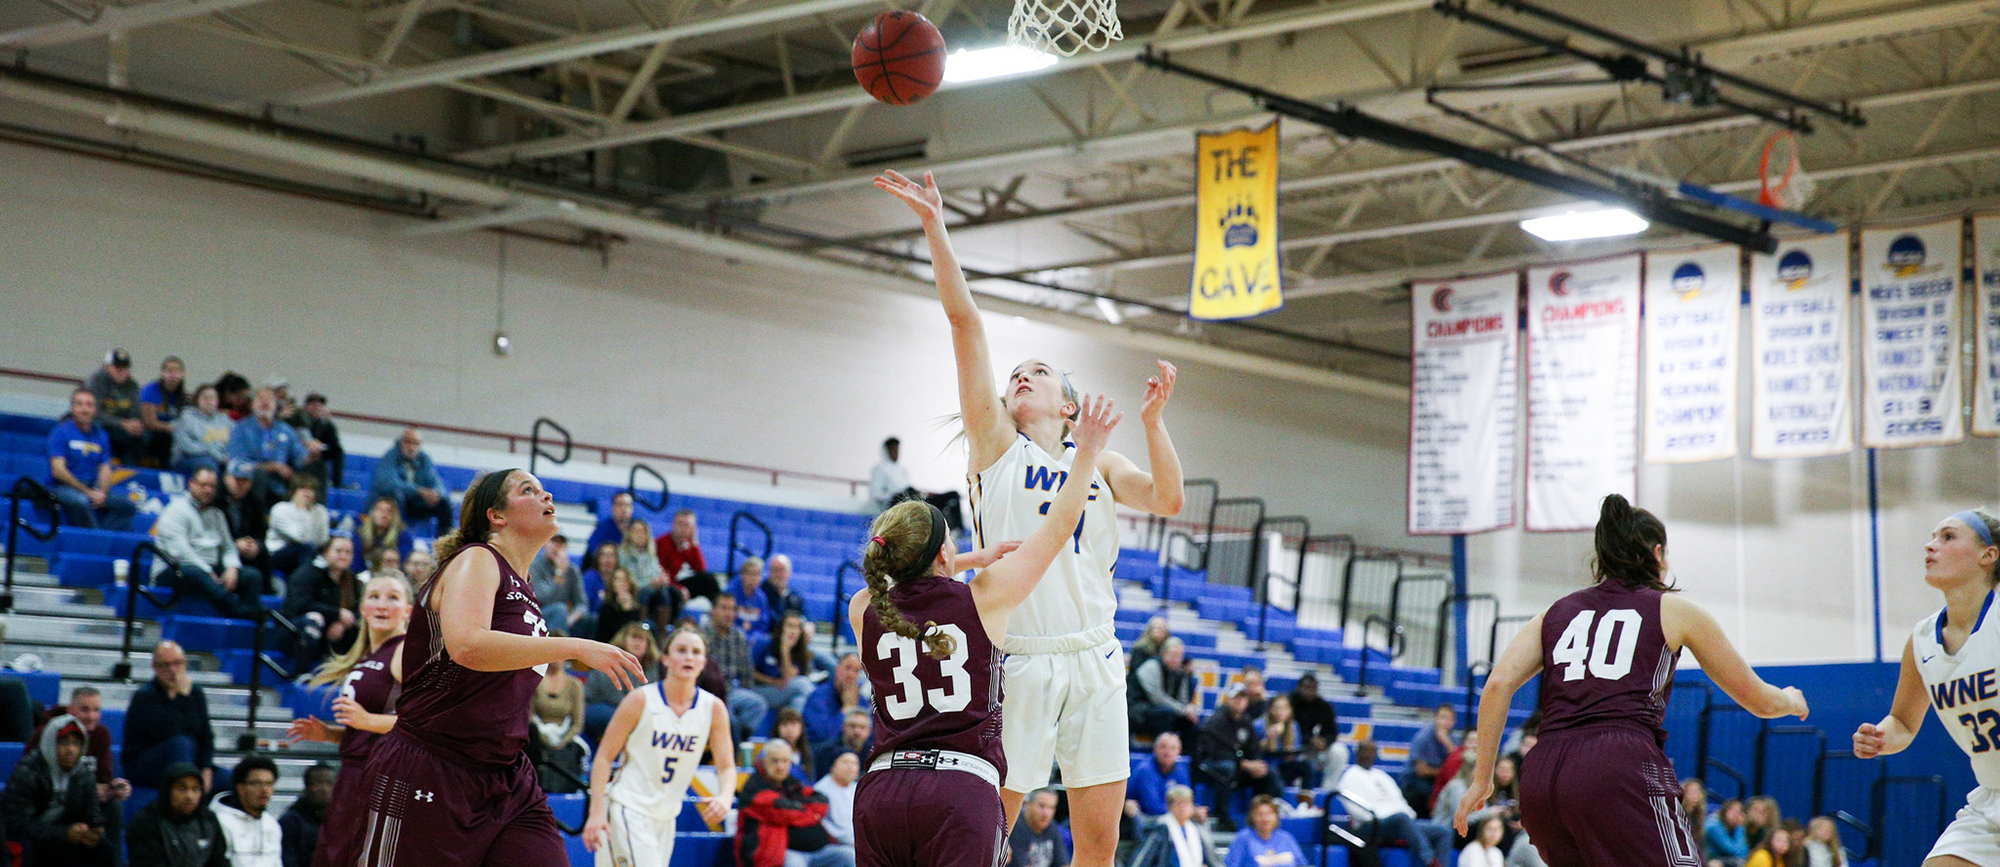 Junior Meghan Orbann posted her fourth career double-double with 14 points and 12 rebounds in Western New England's 58-52 loss to Curry on Saturday. (Photo by Chris Marion)